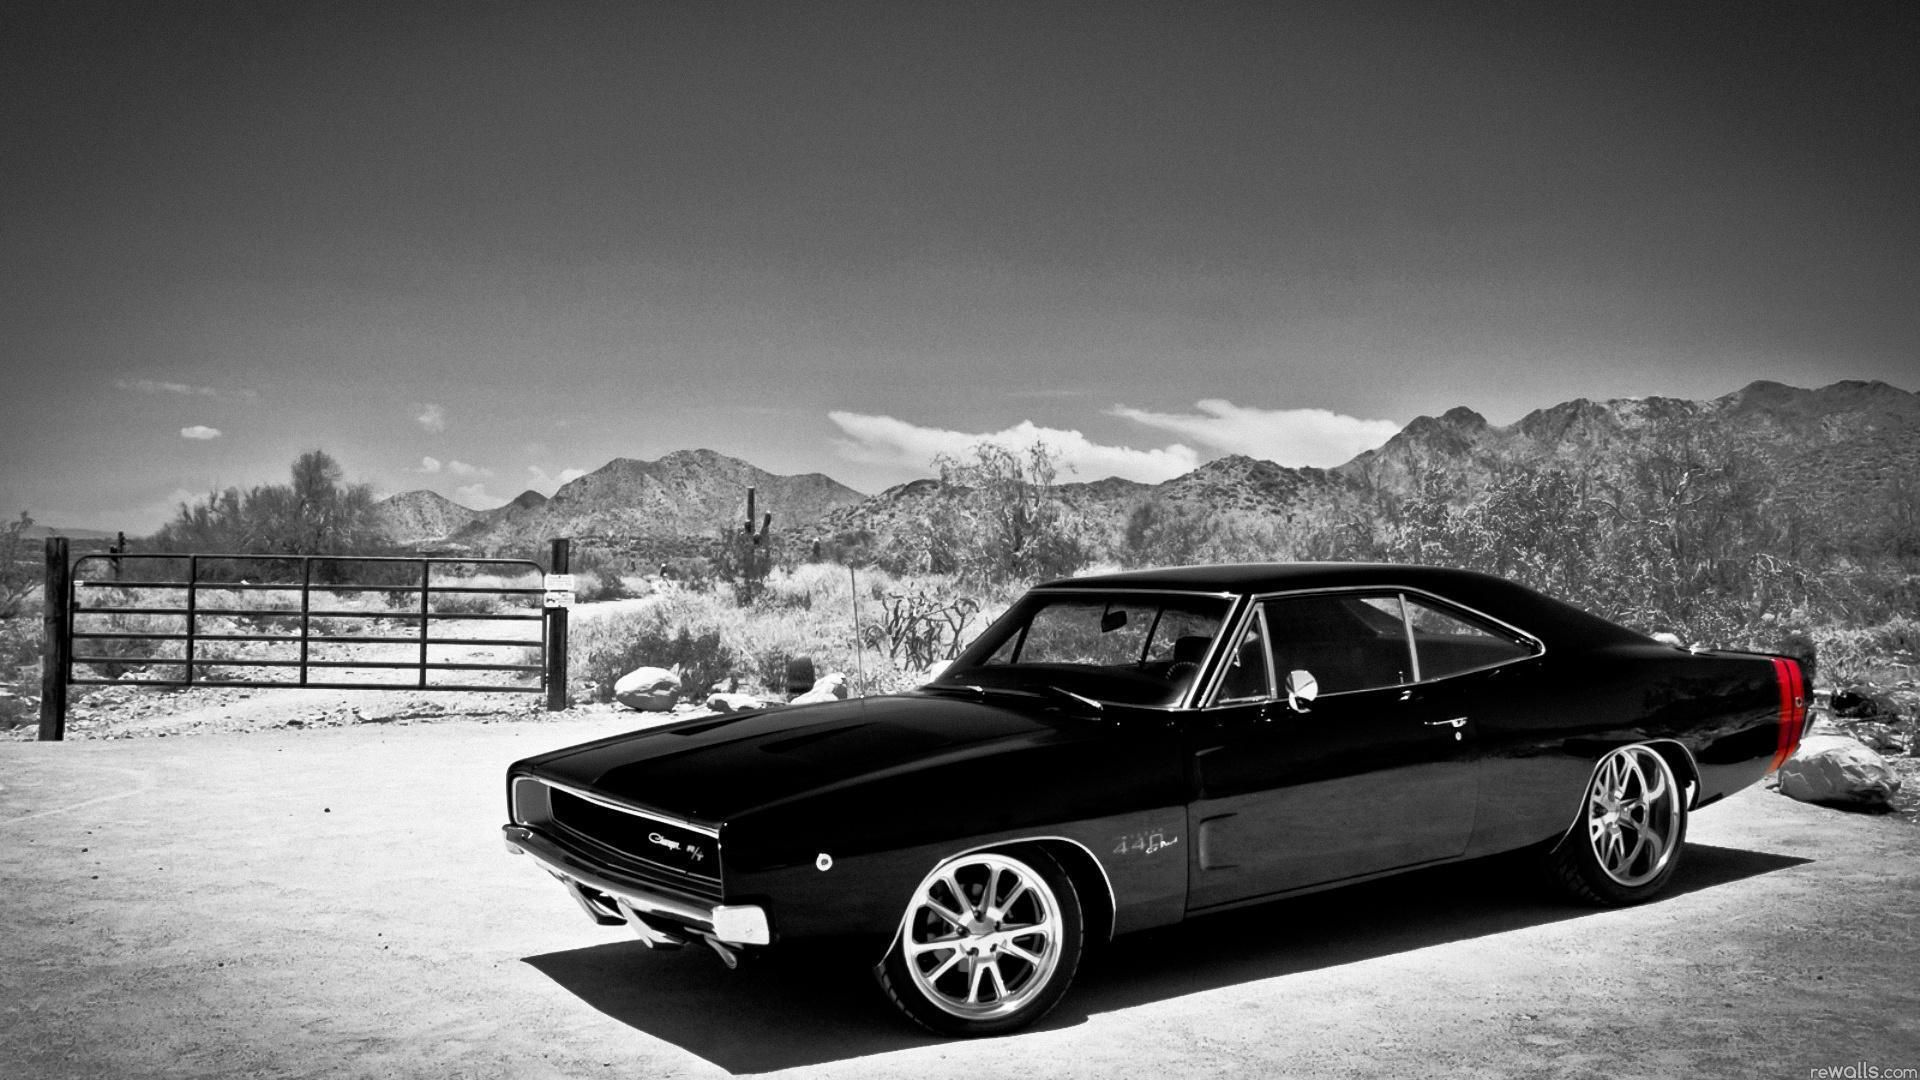 Cool Muscle Car Wallpapers High Definition Old Muscle Cars Classic Cars Muscle Best Muscle Cars